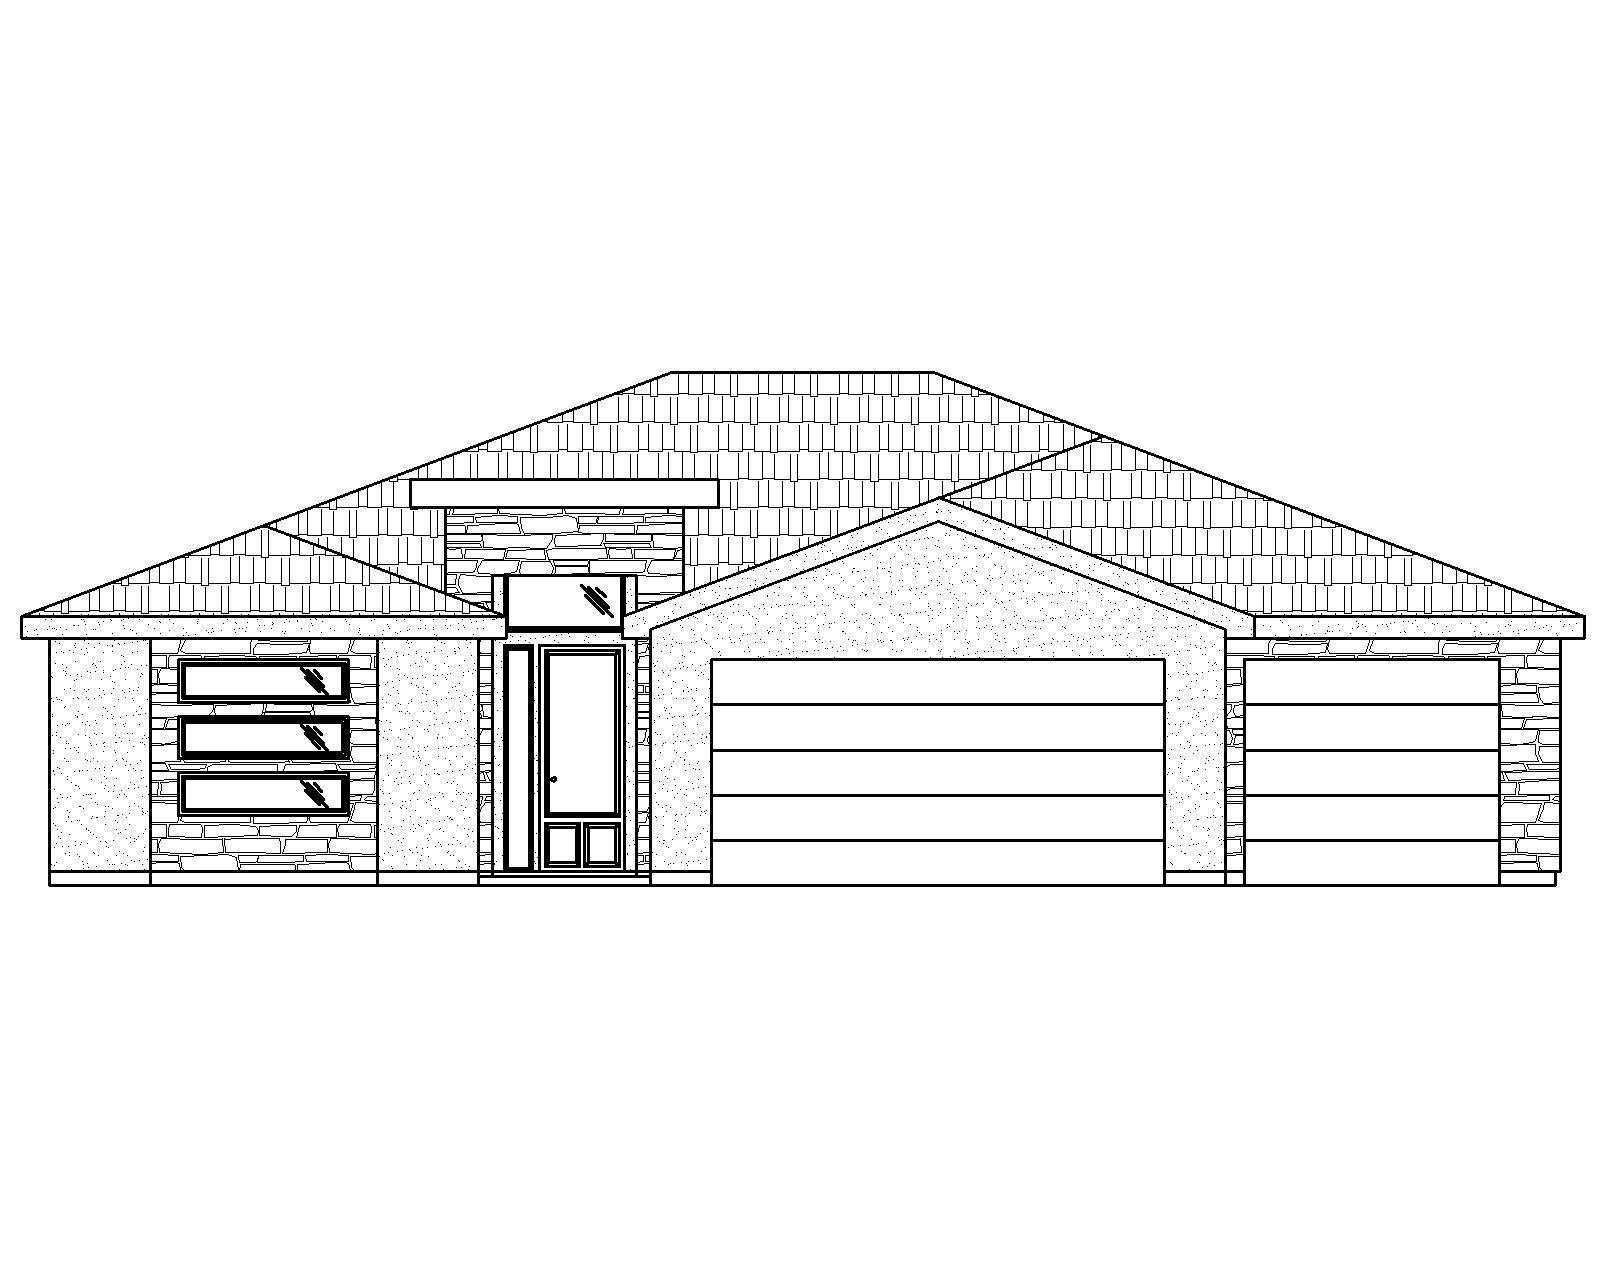 4797 S Resolution Dr, Washington Ut 84780